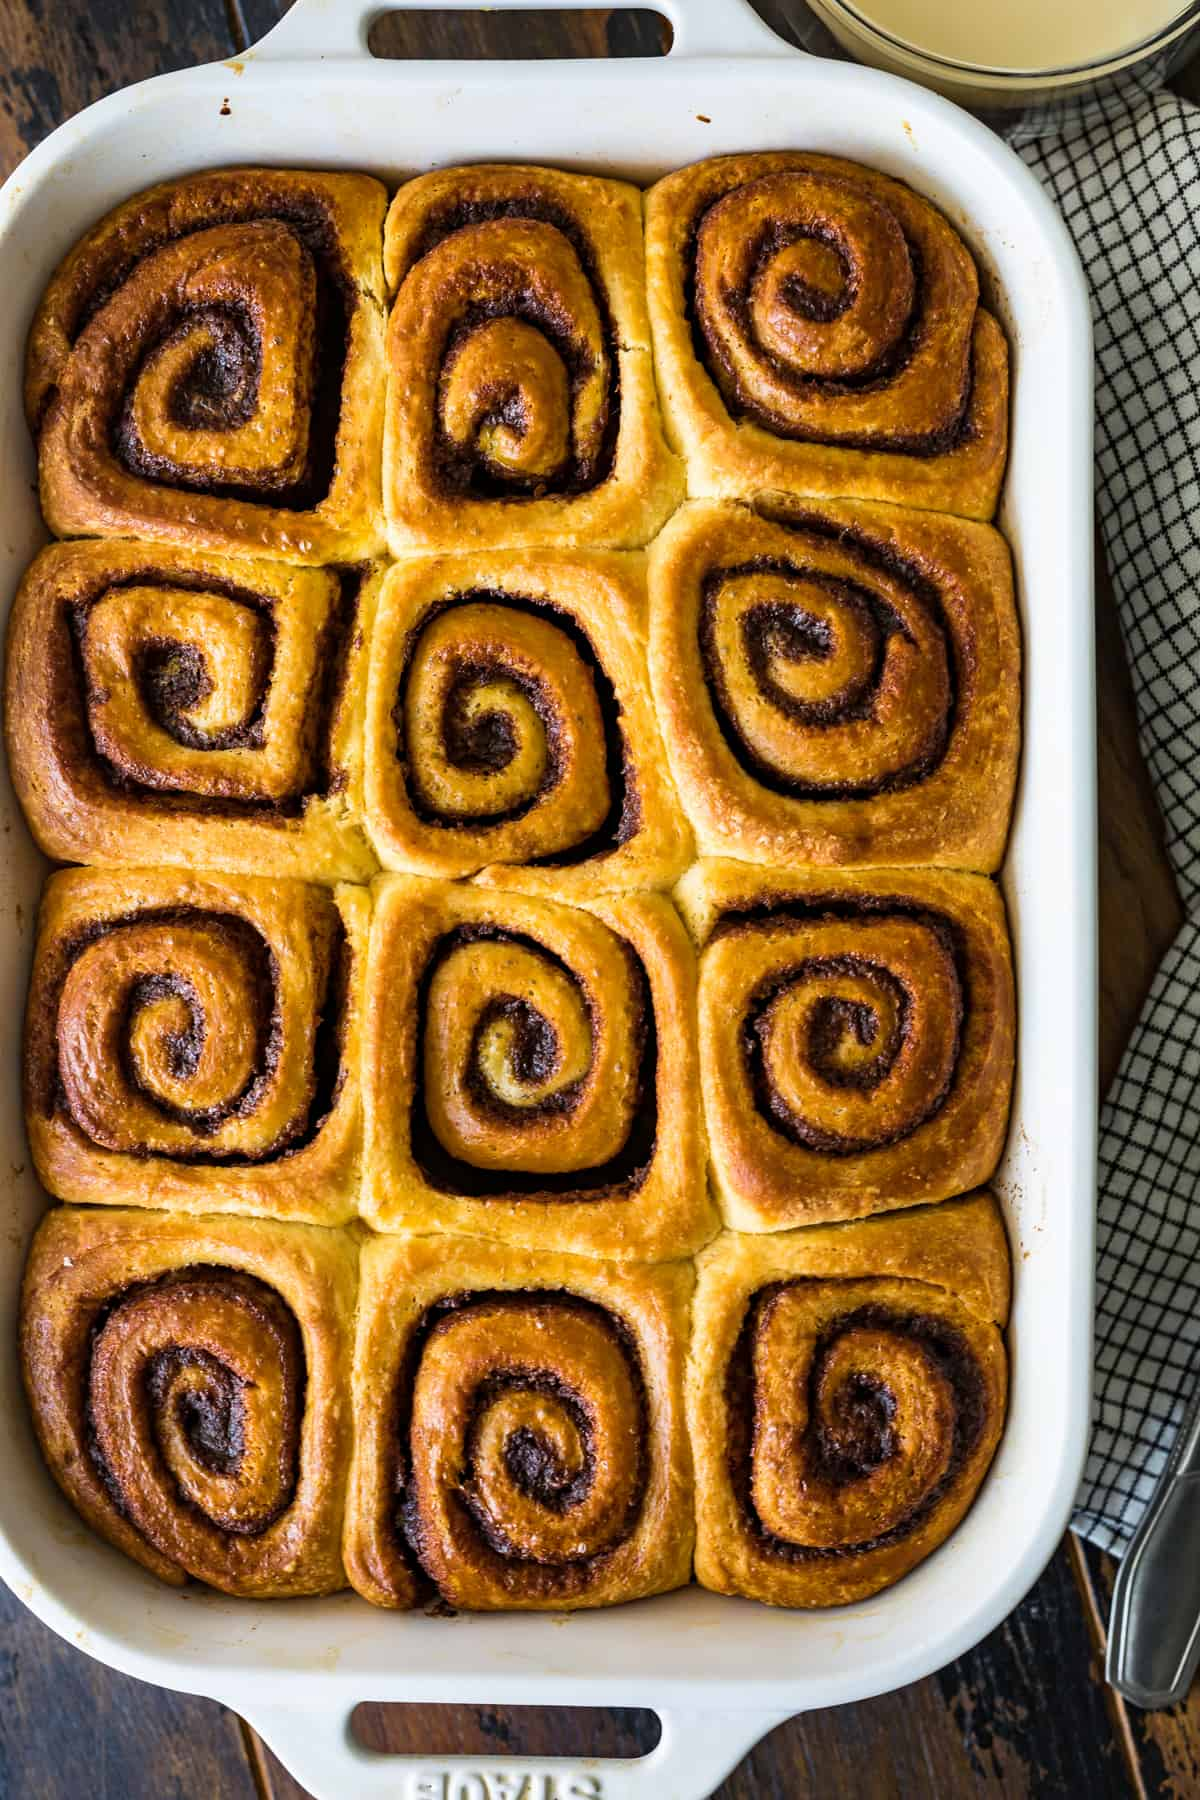 Homemade Cinnamon Rolls before being iced